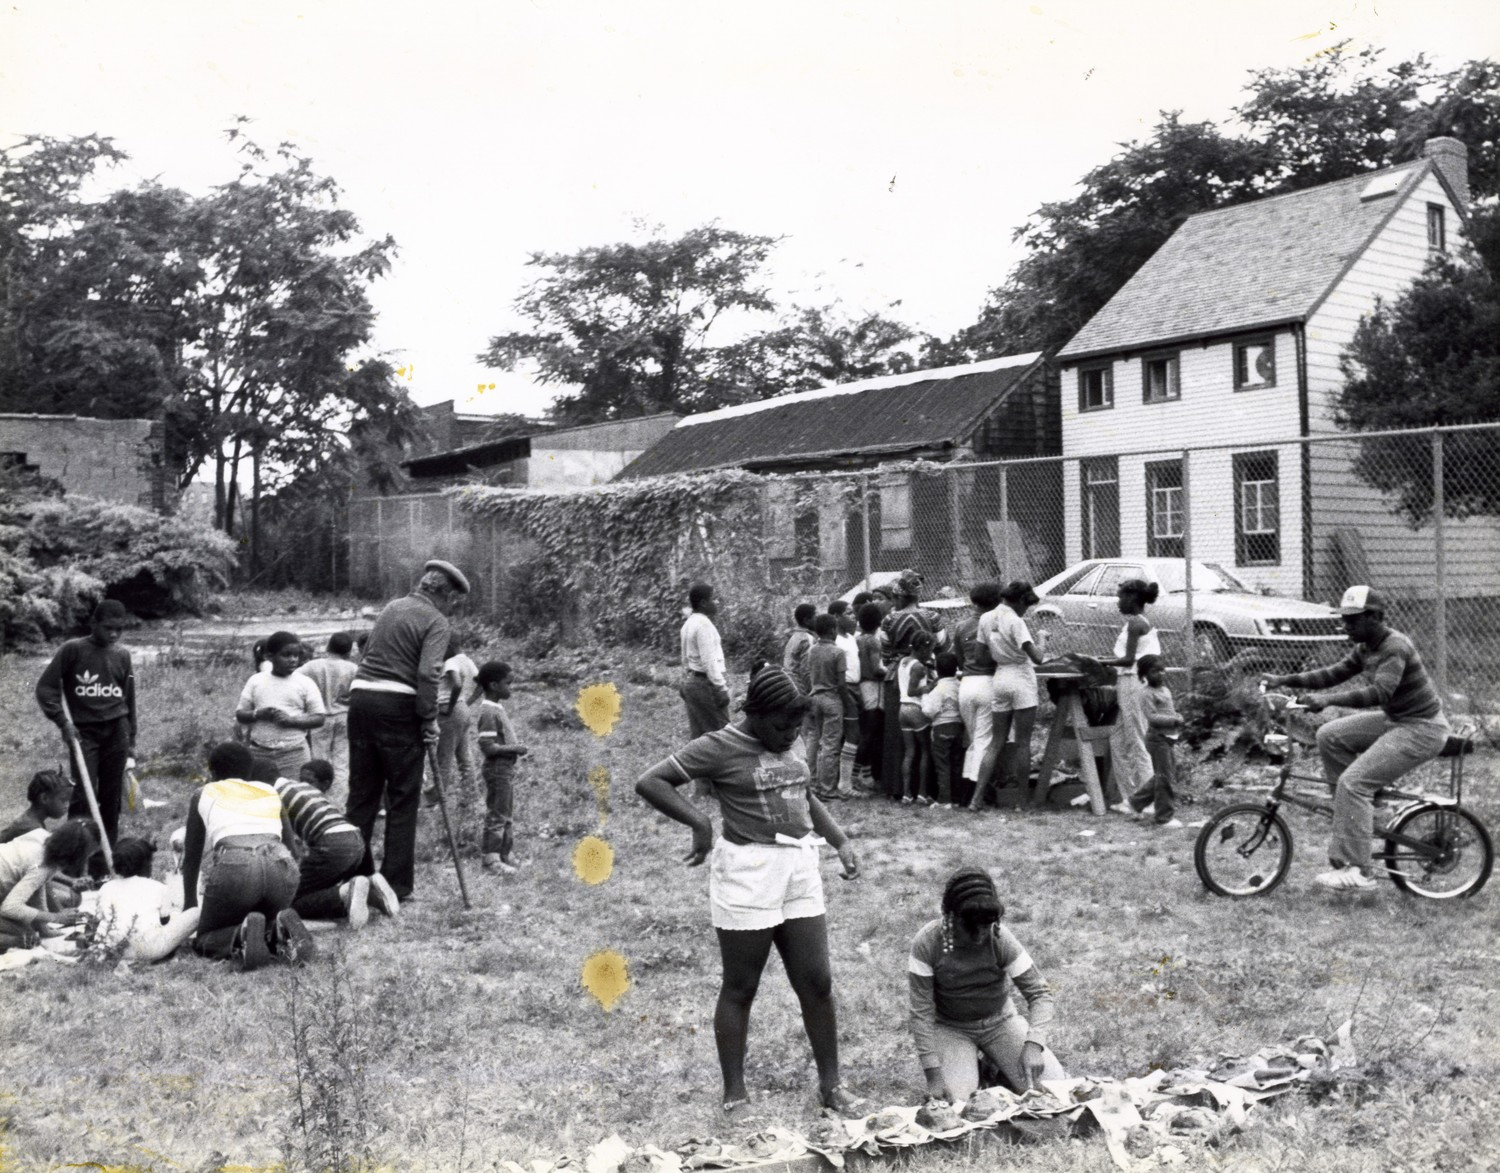 The history of Weeksville: When Crown Heights had the second